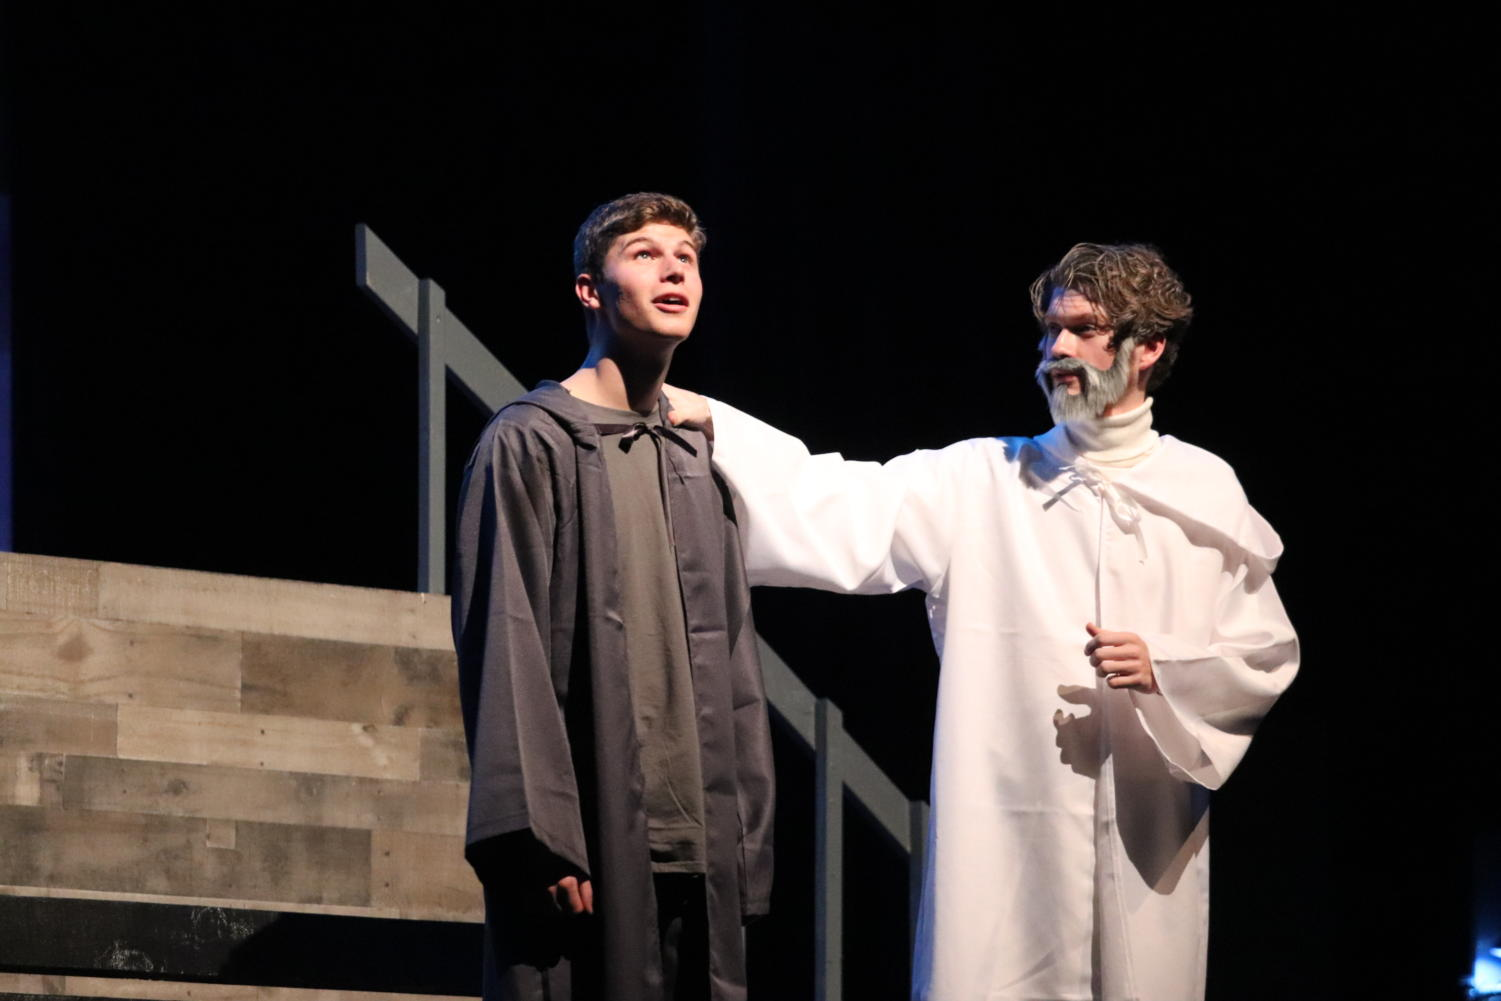 Jonas, Matthew Taylor, and The Giver, Mick Smith, share a memory onstage.